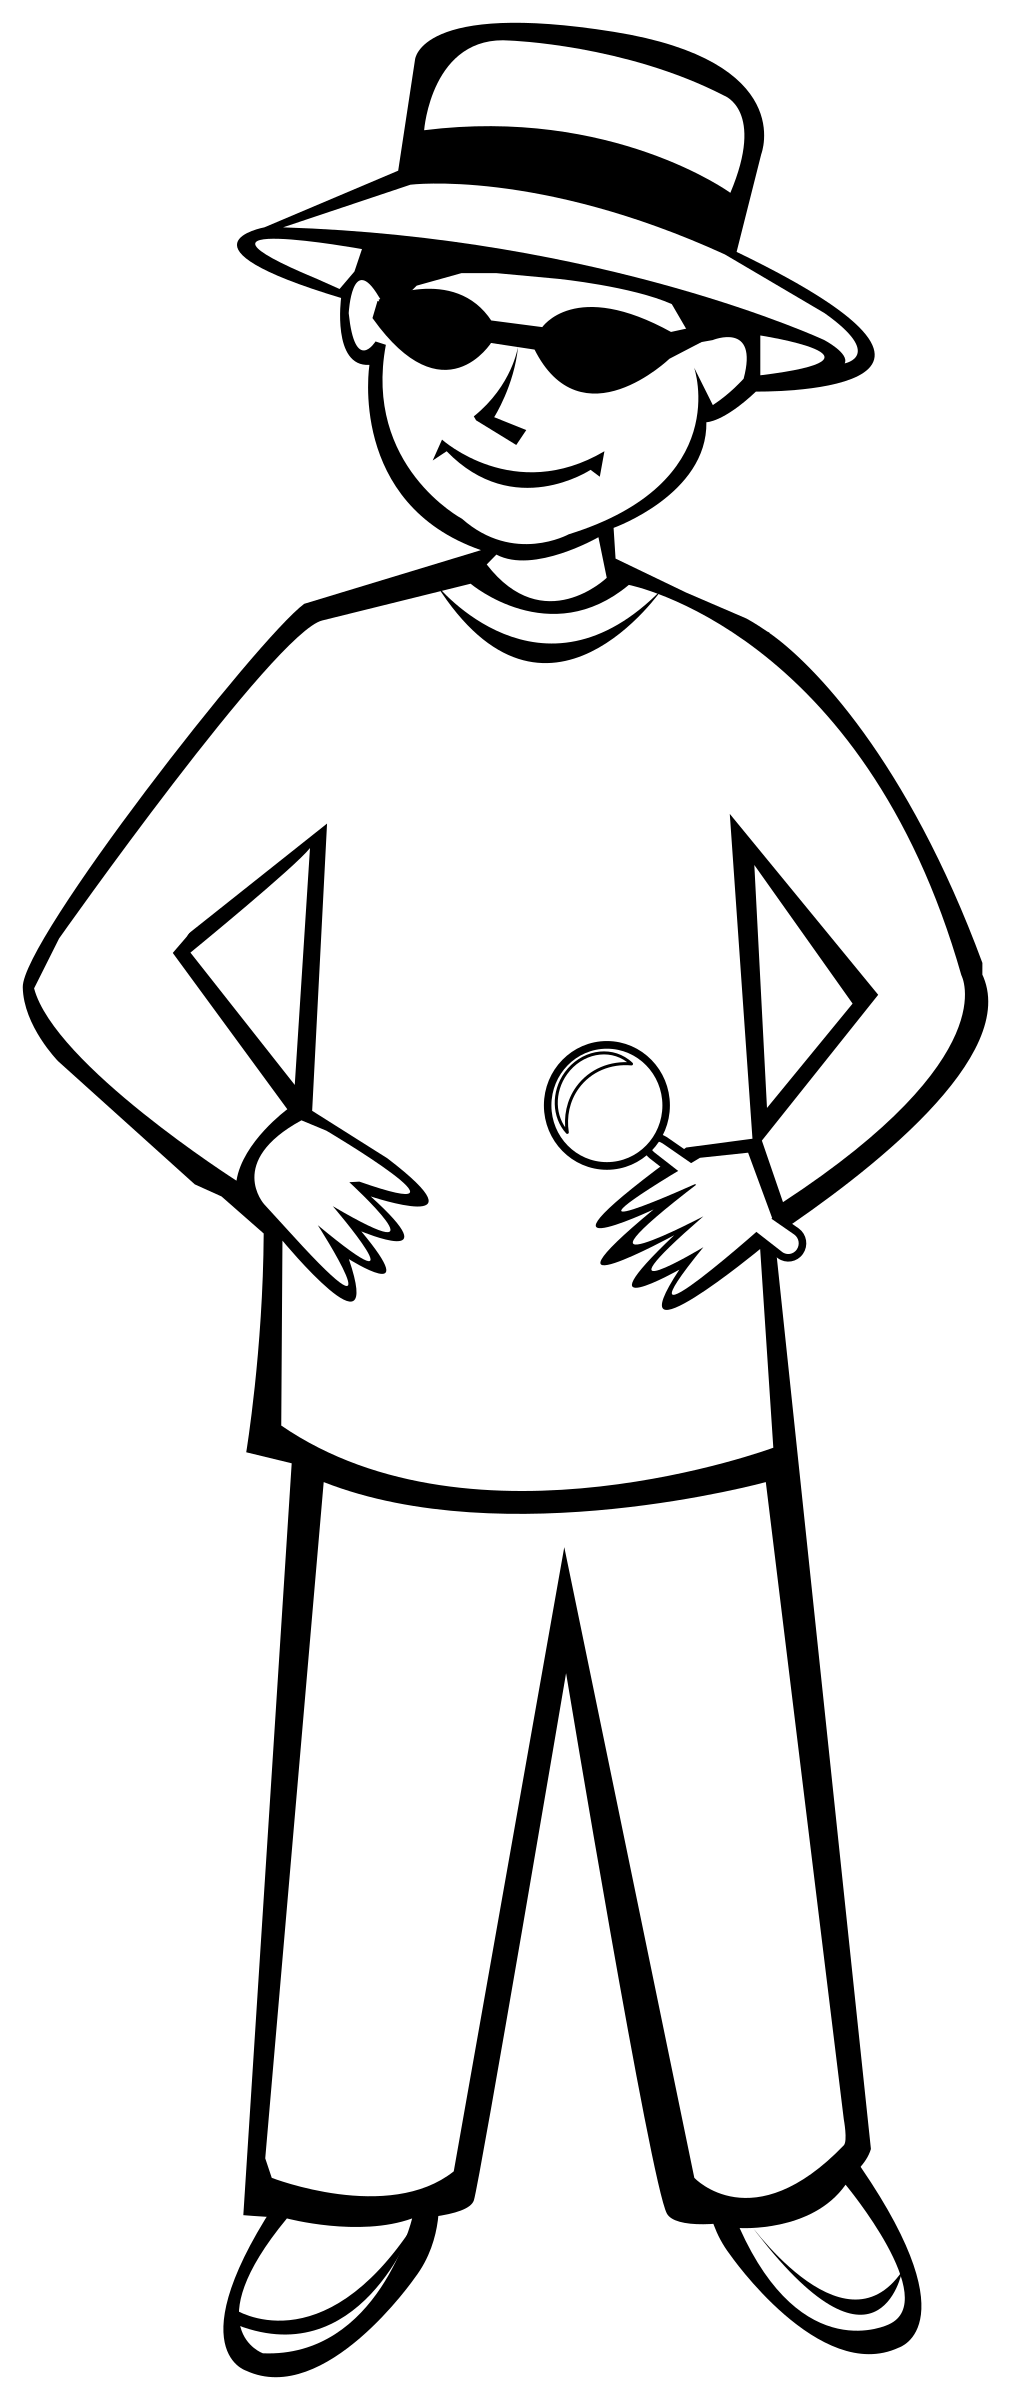 This Free Icons Png Design Of Spy Kid Outline 1 Hdpng.com  - Thin Boy Black And White, Transparent background PNG HD thumbnail